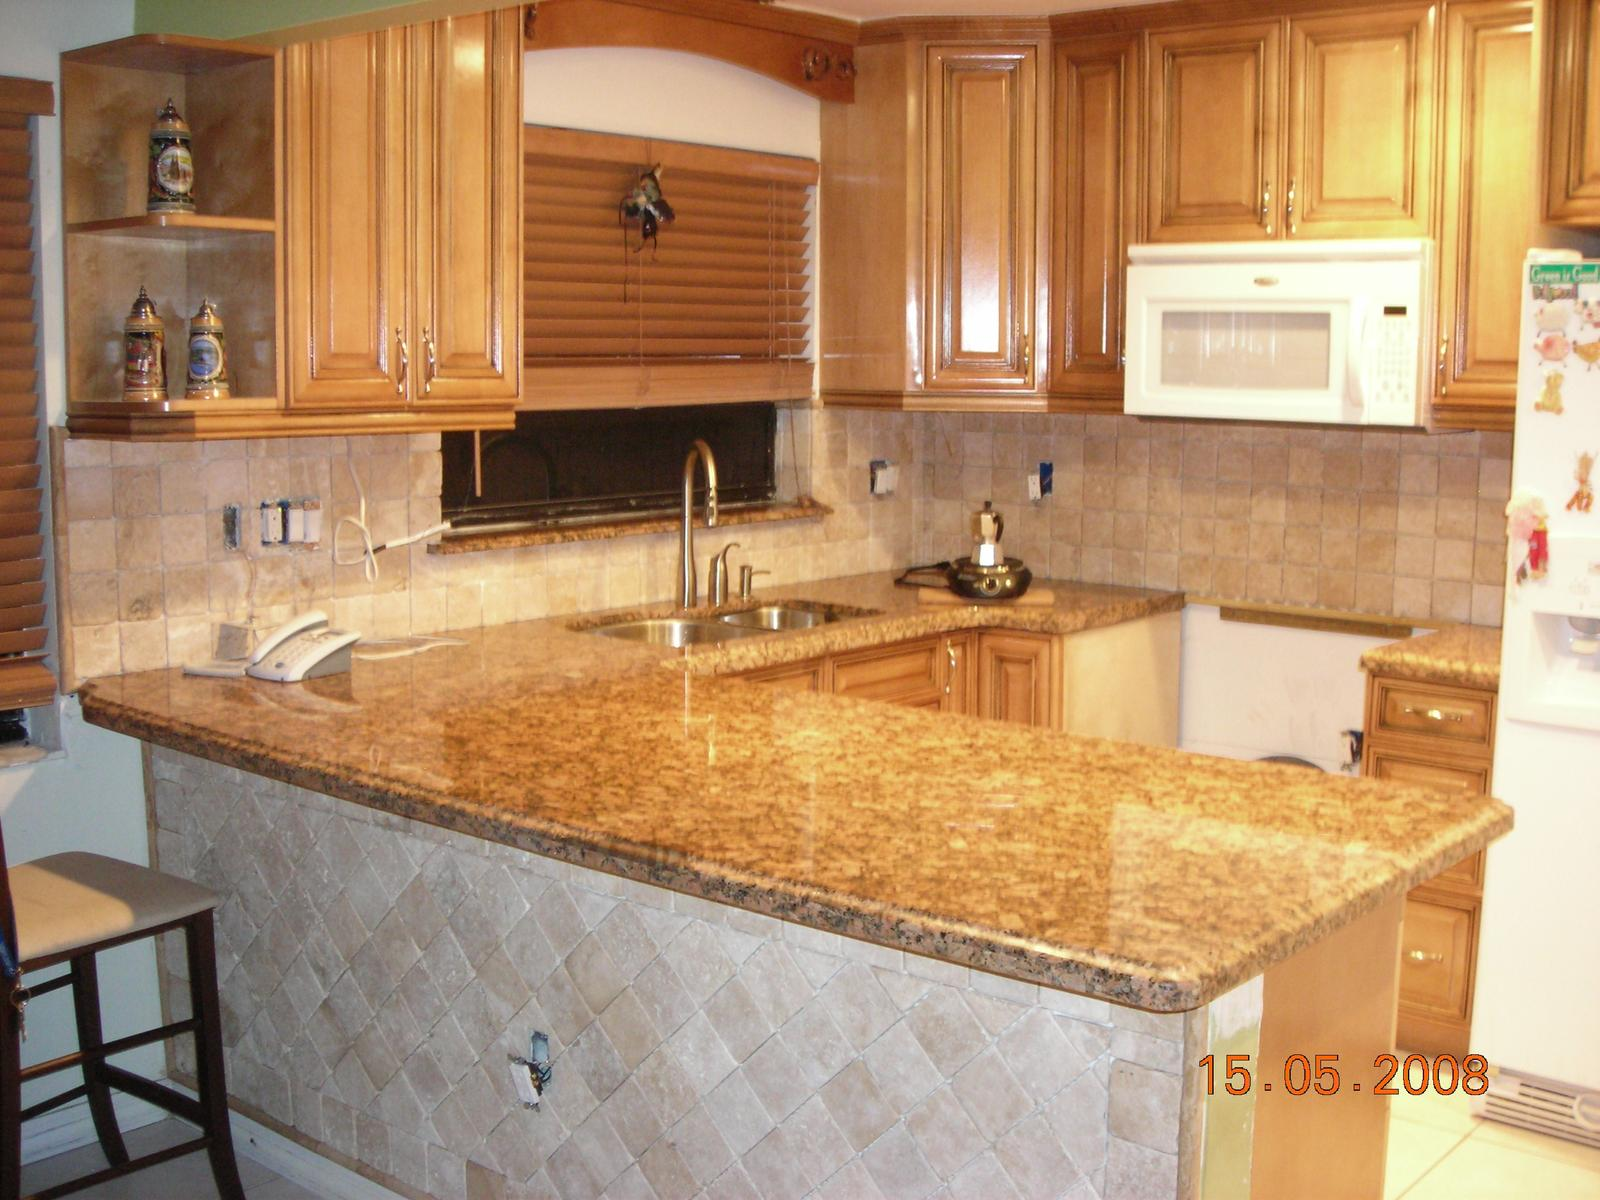 kitchen cabinet feedback kitchen cabinets miami Kitchen Cabinet feedback kitchen after